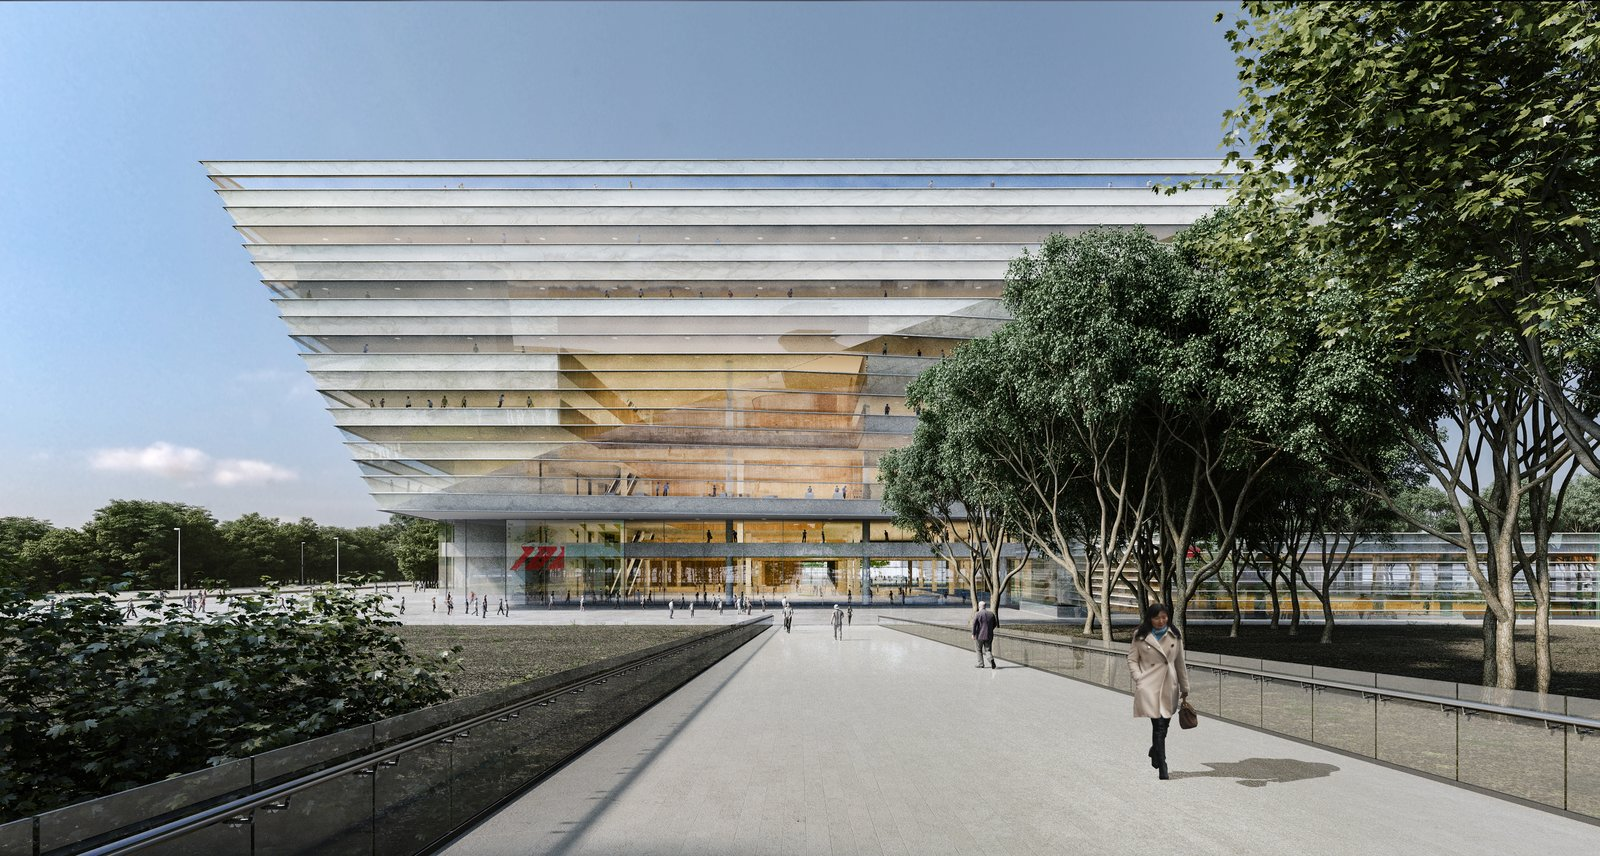 Photo 1 of 8 in Schmidt Hammer Lassen Architects' Winning Design For the Shanghai Library